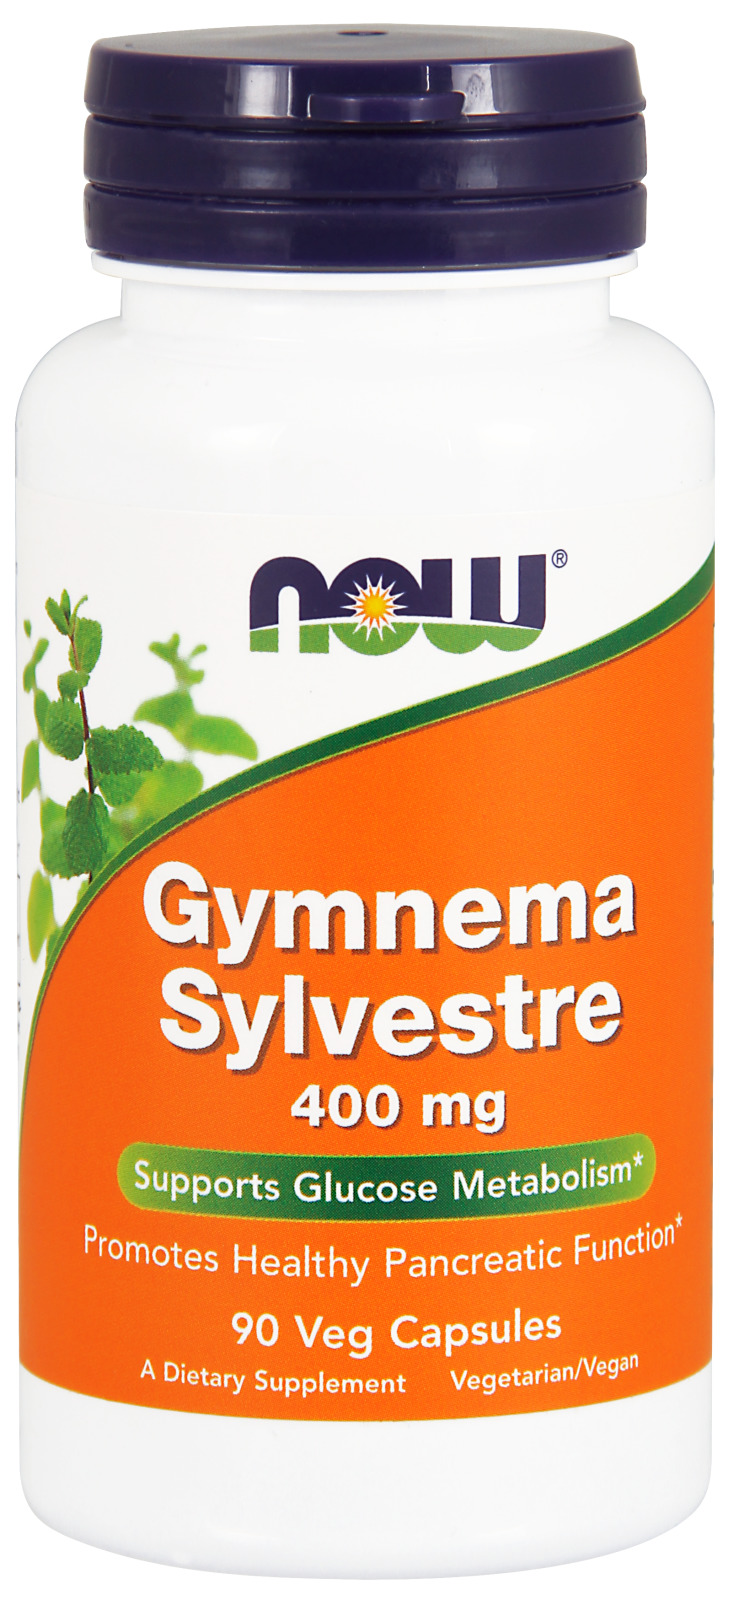 Gymnema Sylvestre 400 mg 90 caps by NOW